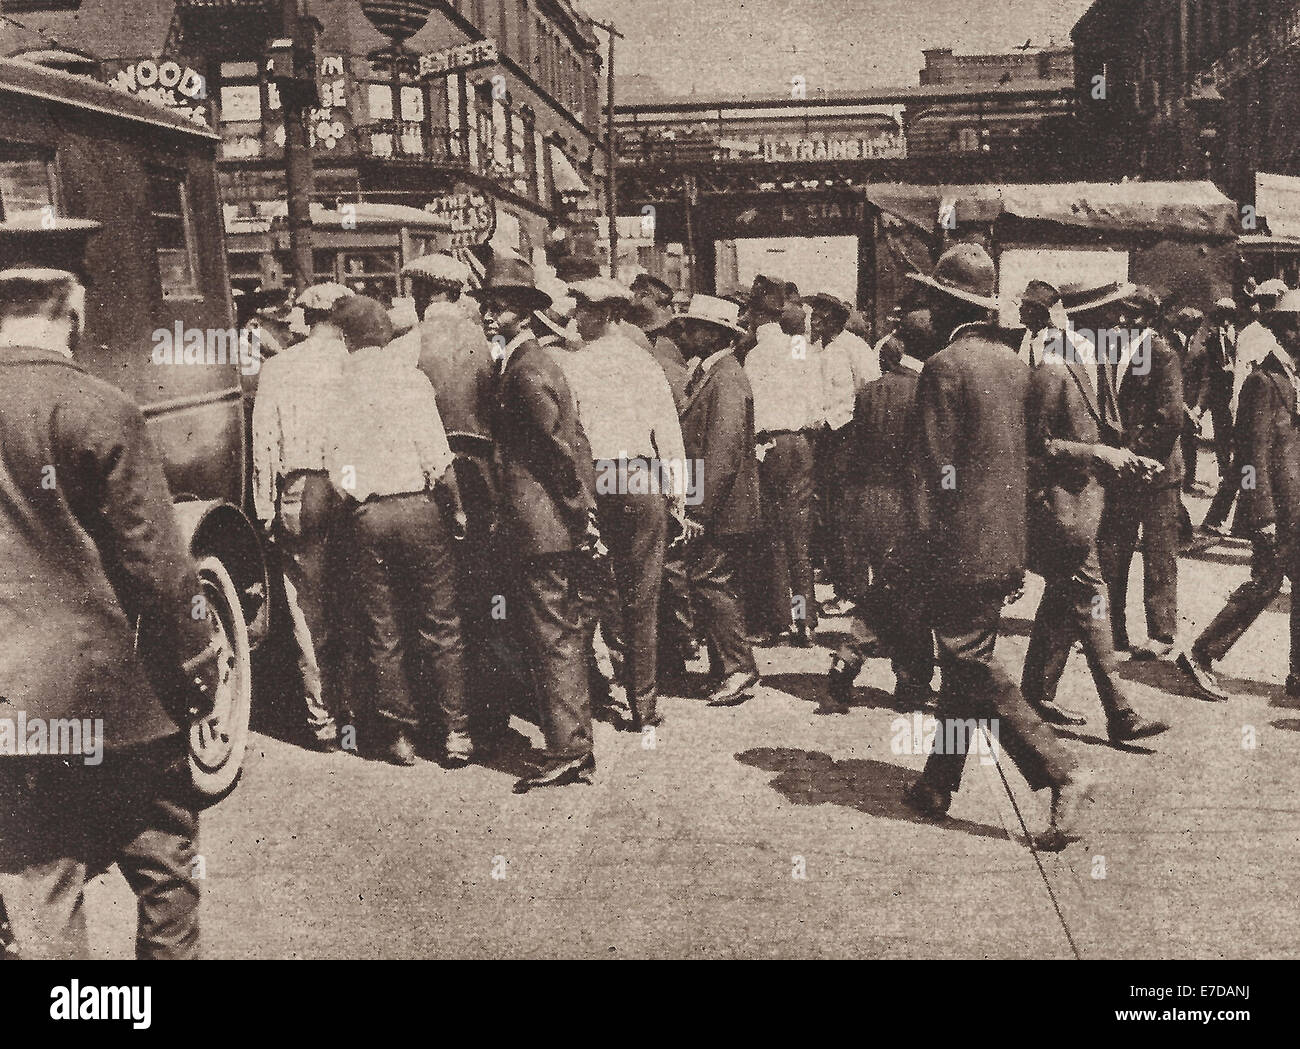 Taking  some rioting African Americans away in patrol wagons - Chicago Race Riots of 1919 - Stock Image